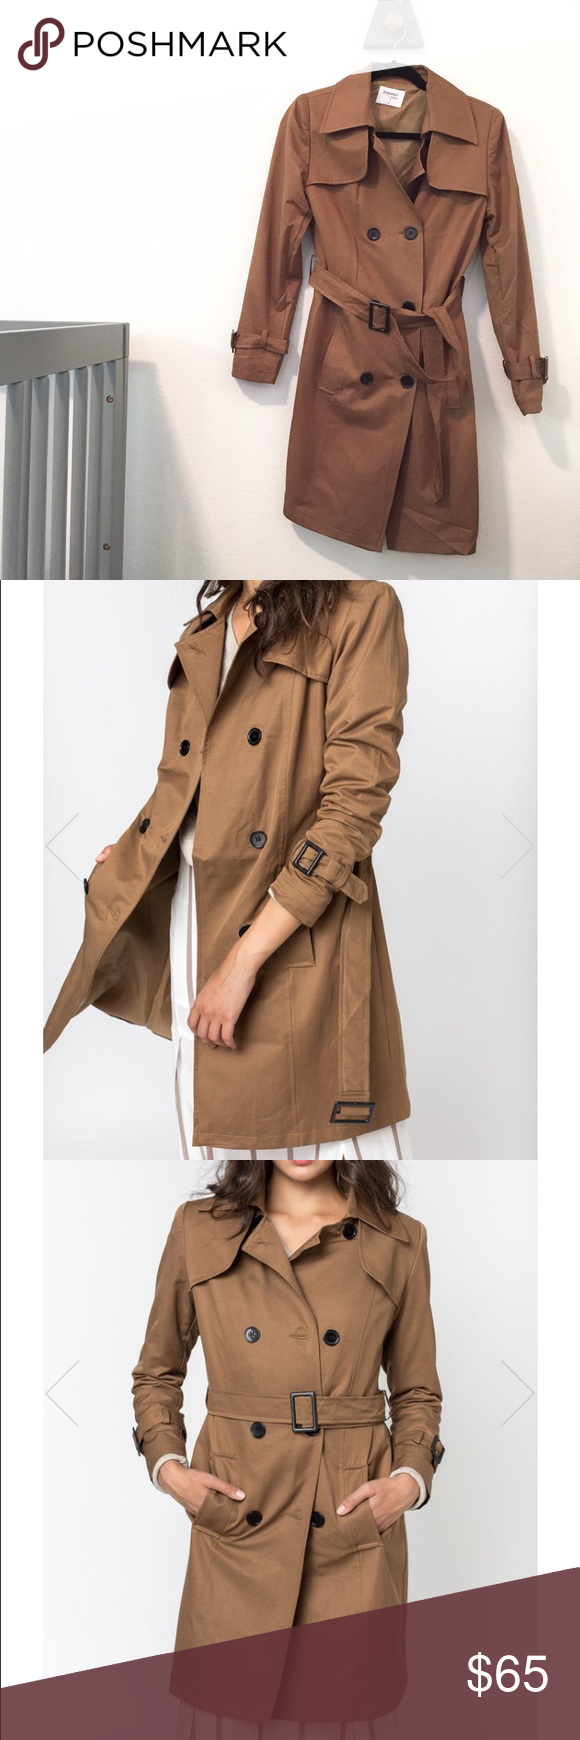 Sincerely Jules Trench Coat NWOT I bought this brand new to wear during my pregnancy, but the weather hasn't cooled down enough for me to put this beauty to good use. Never worn before. I can steam it before I deliver it. sincerelyjules Jackets & Coats Trench Coats